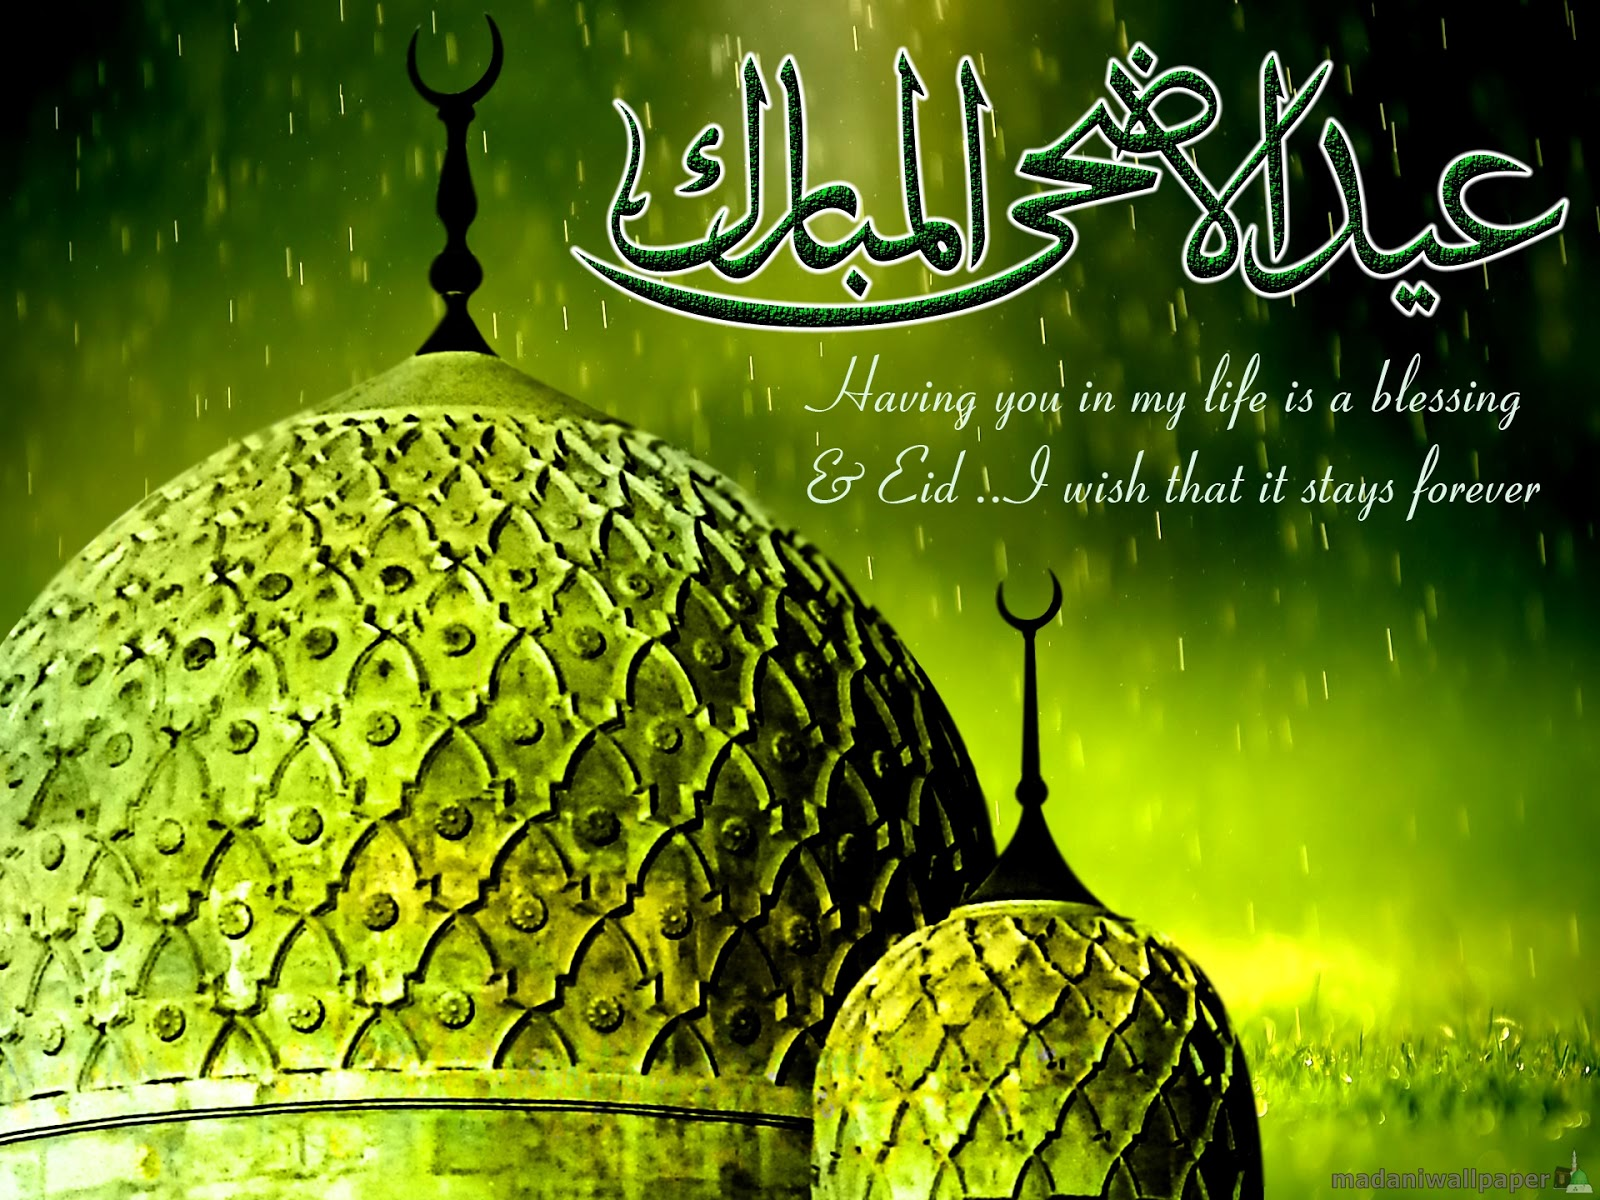 8 best eid greeting cards 2015 eid mubarak to you and all your family kristyandbryce Image collections